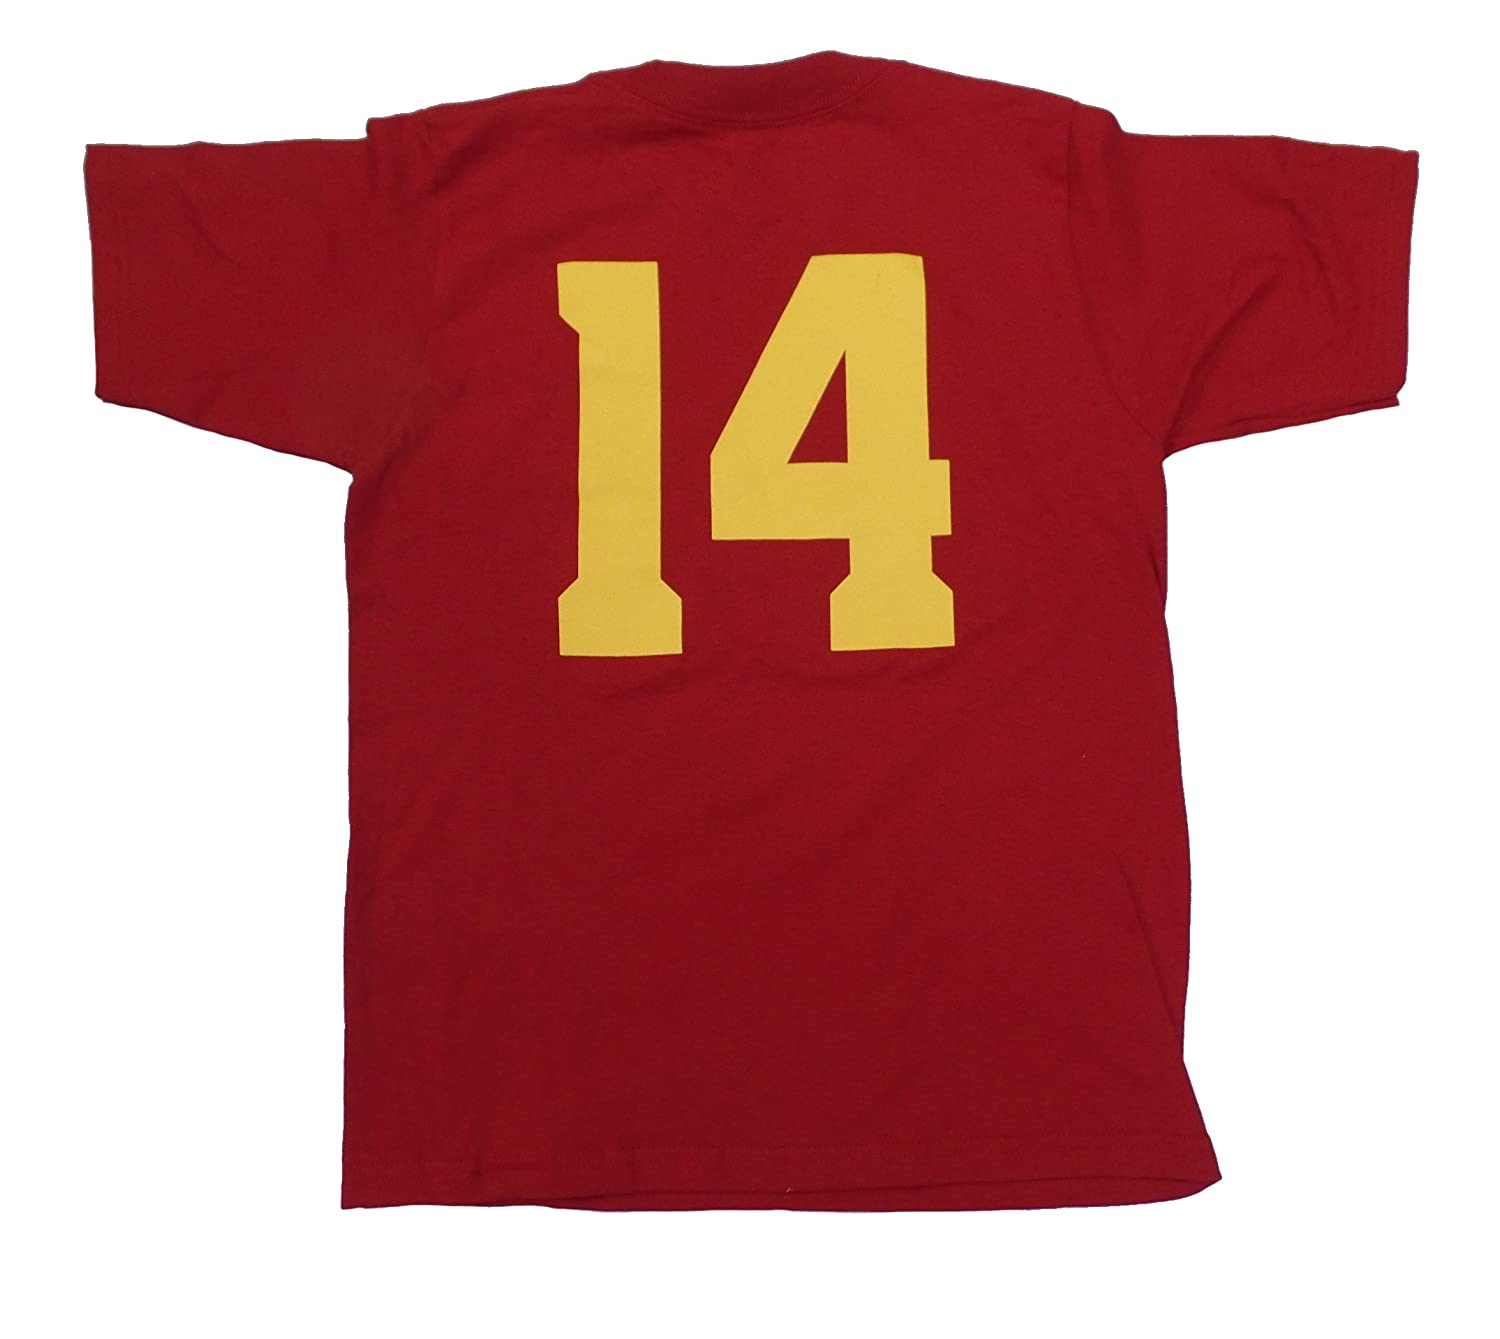 bef5ad3aefa9 Amazon.com   Sam Darnold USC Trojans Men s Red Jersey Name and Number  T-shirt Small   Sports   Outdoors